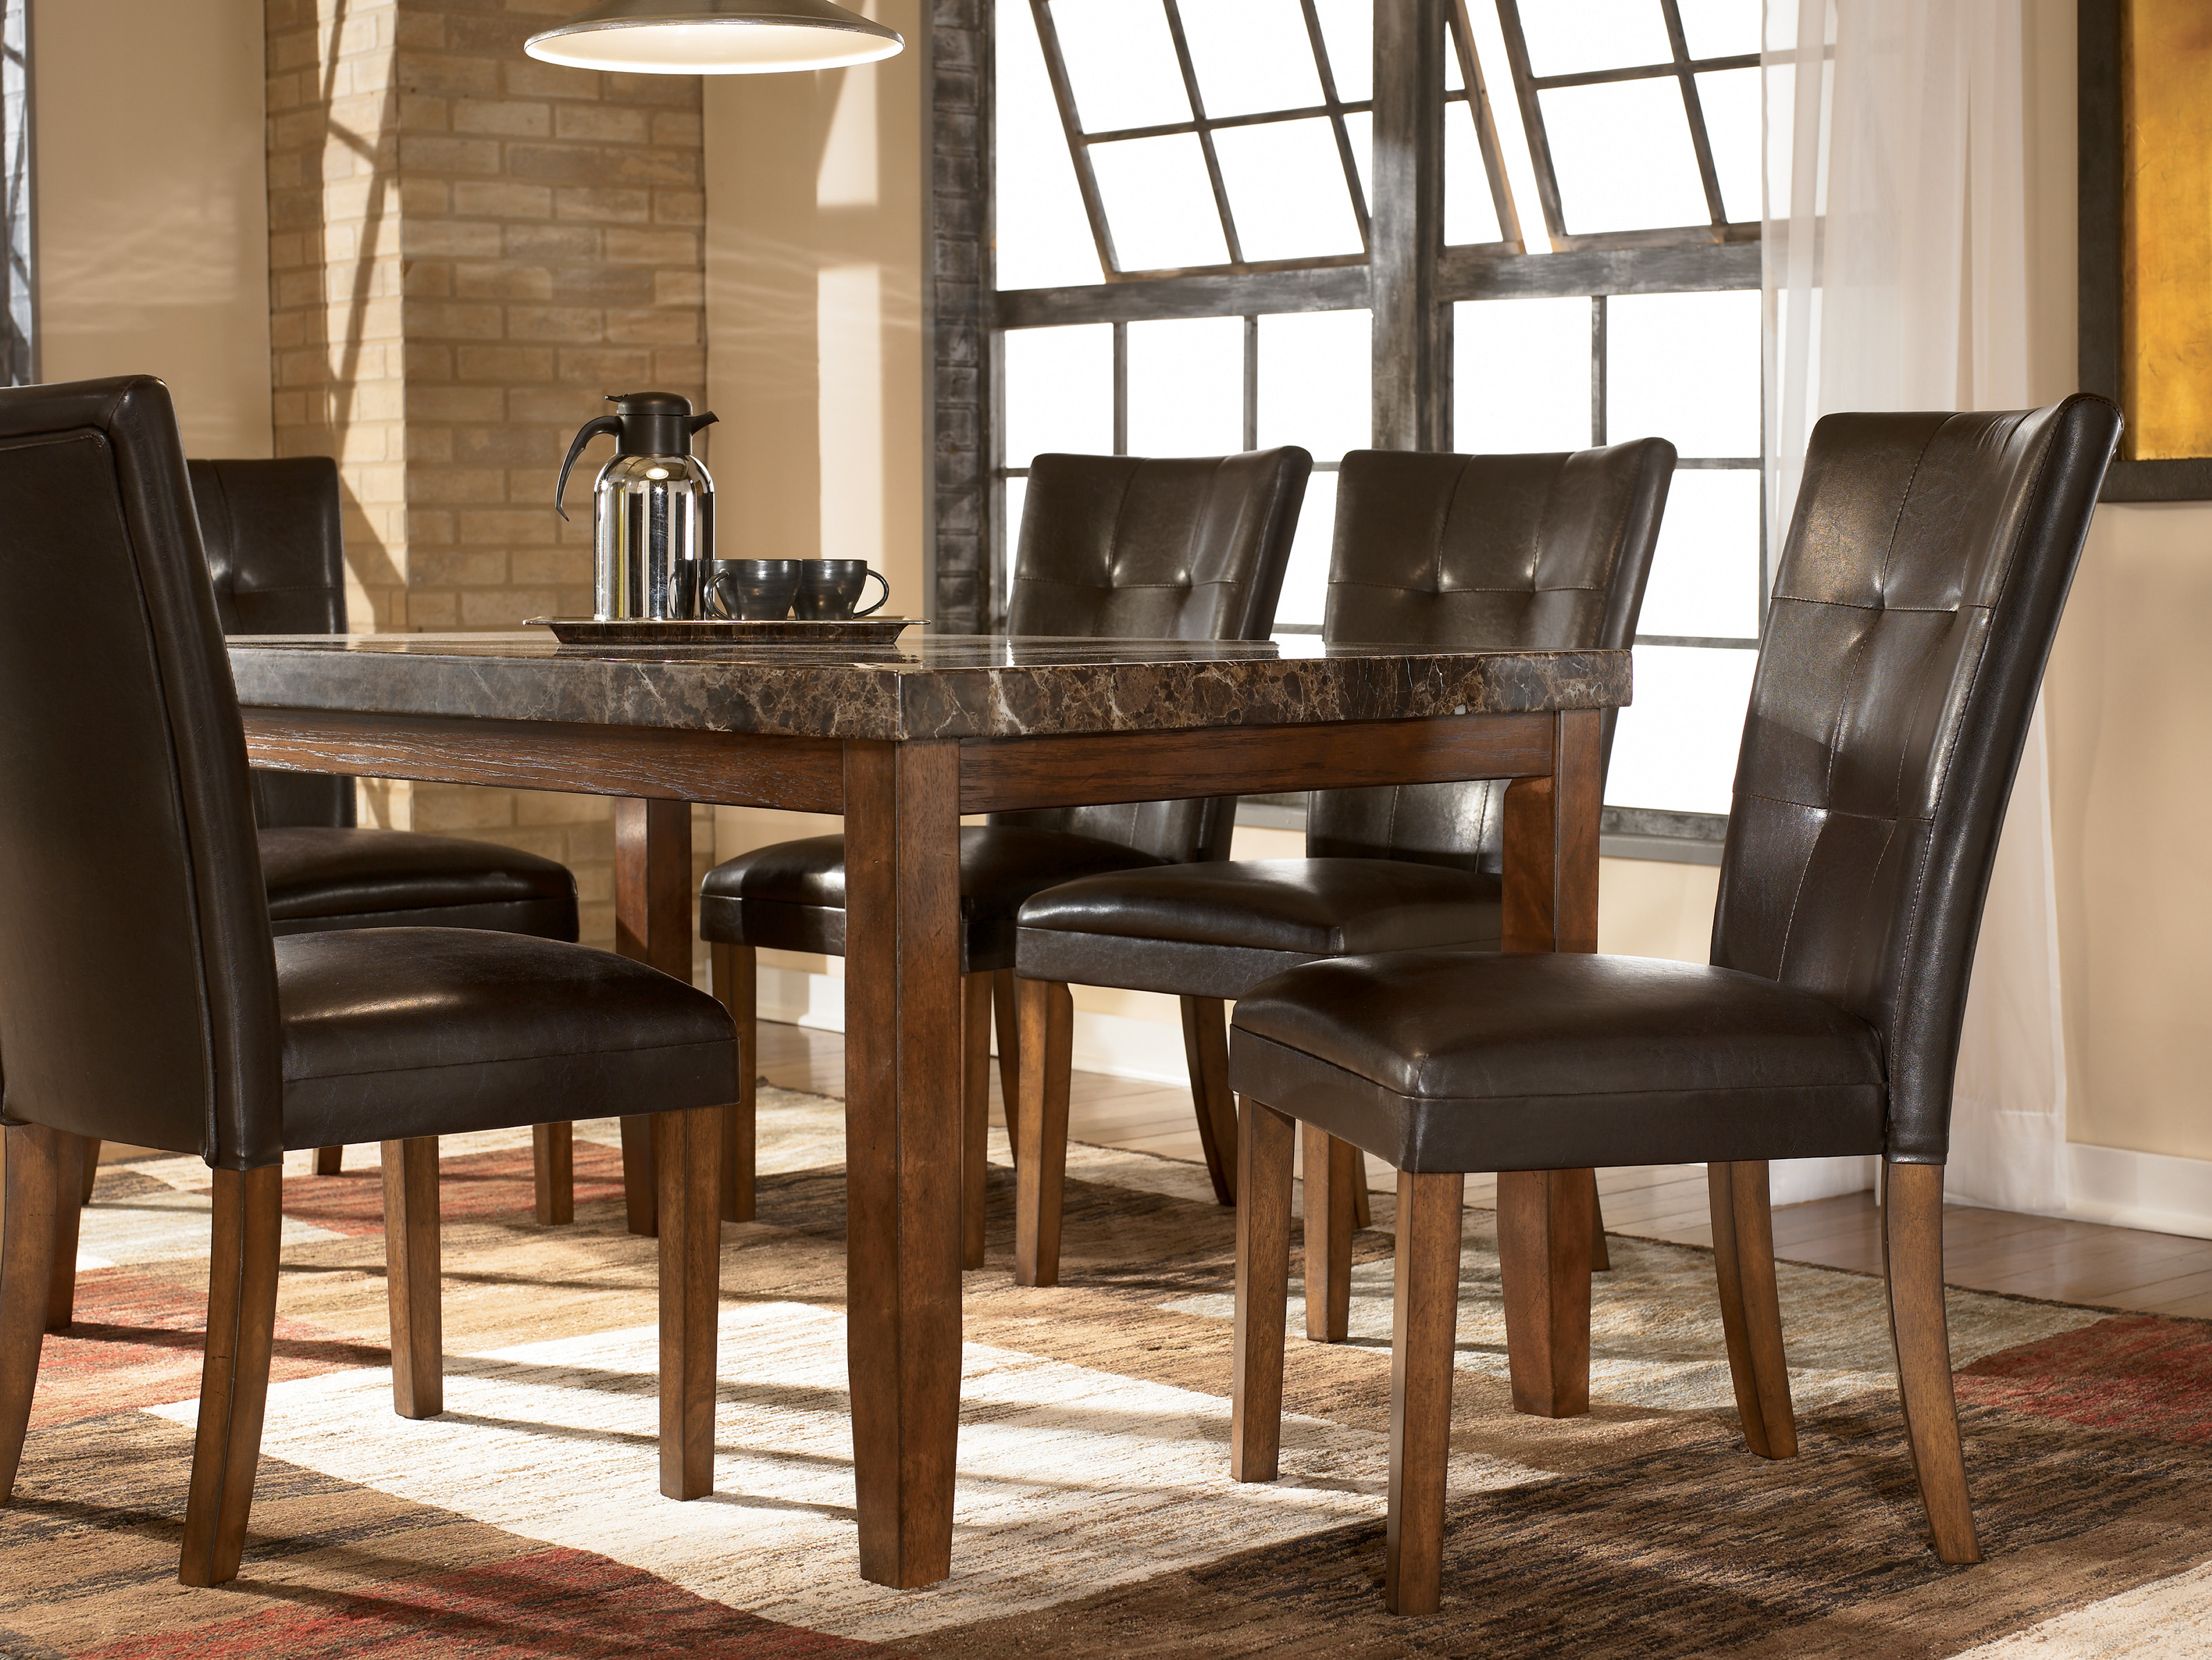 ashley furniture leighton dining room set suitable with ashley furniture lacey dining room set